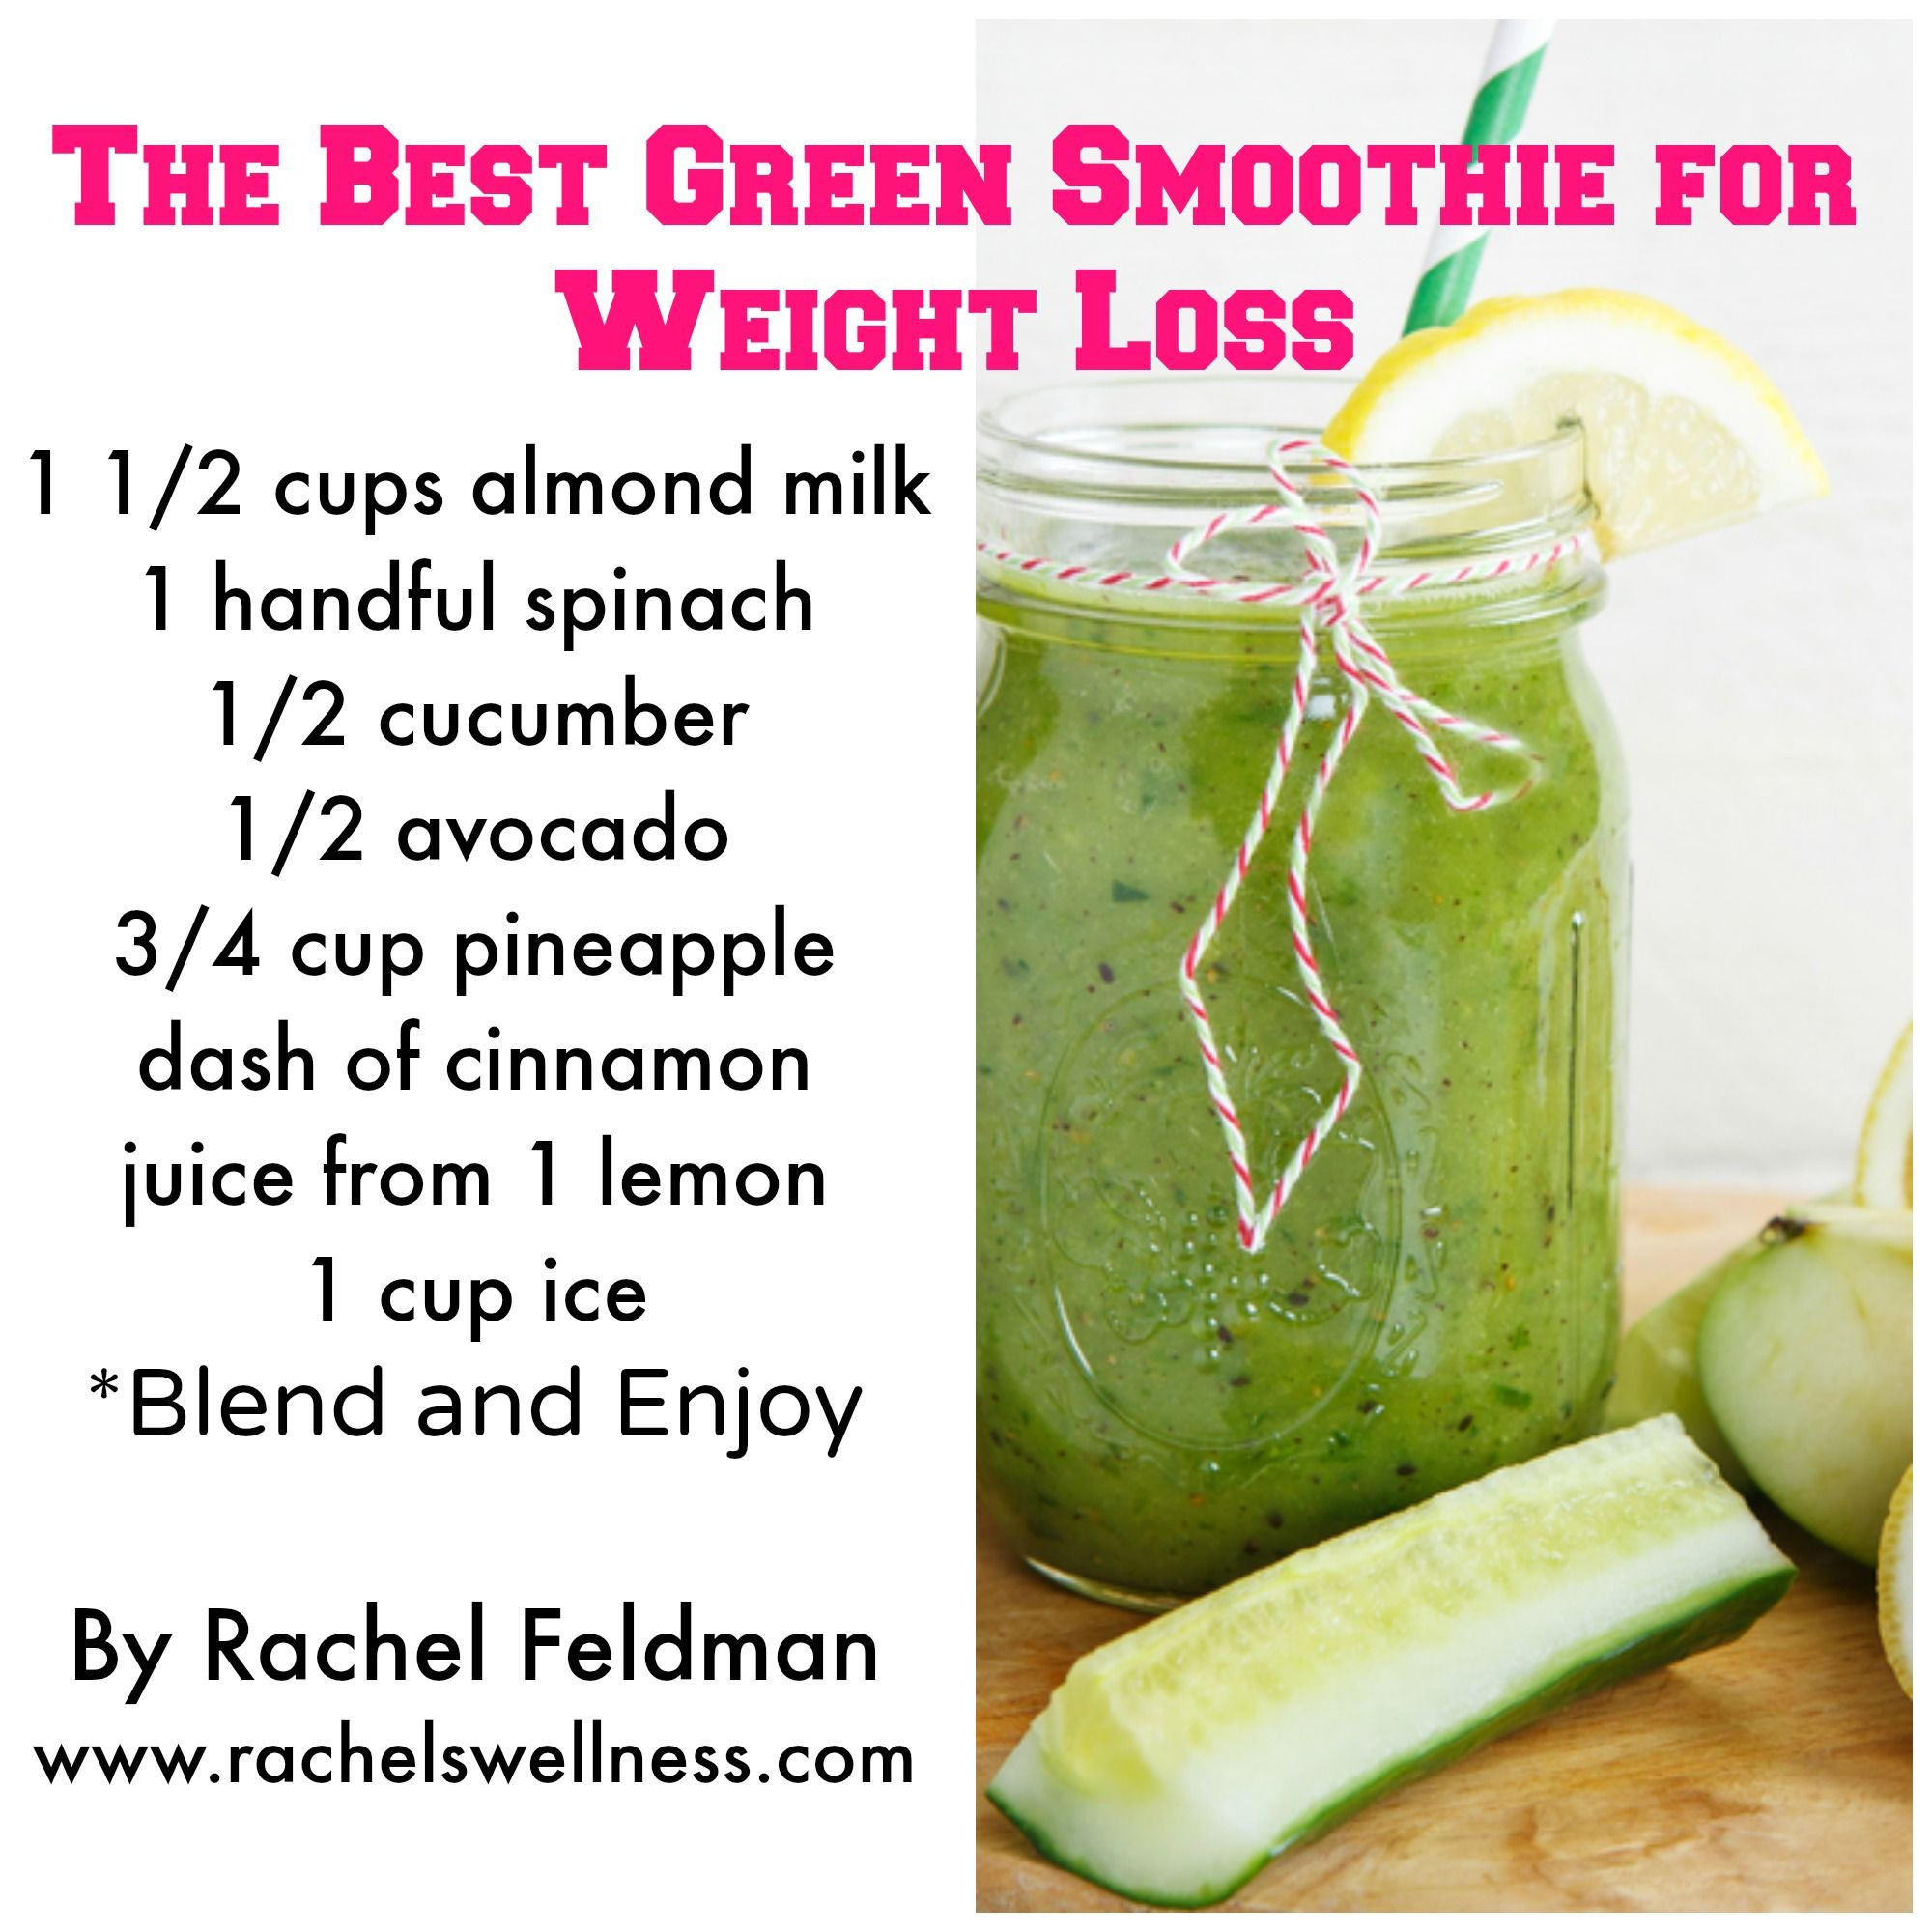 Recipe For Healthy Smoothies For Weight Loss  7 Healthy Green Smoothie Recipes For Weight Loss